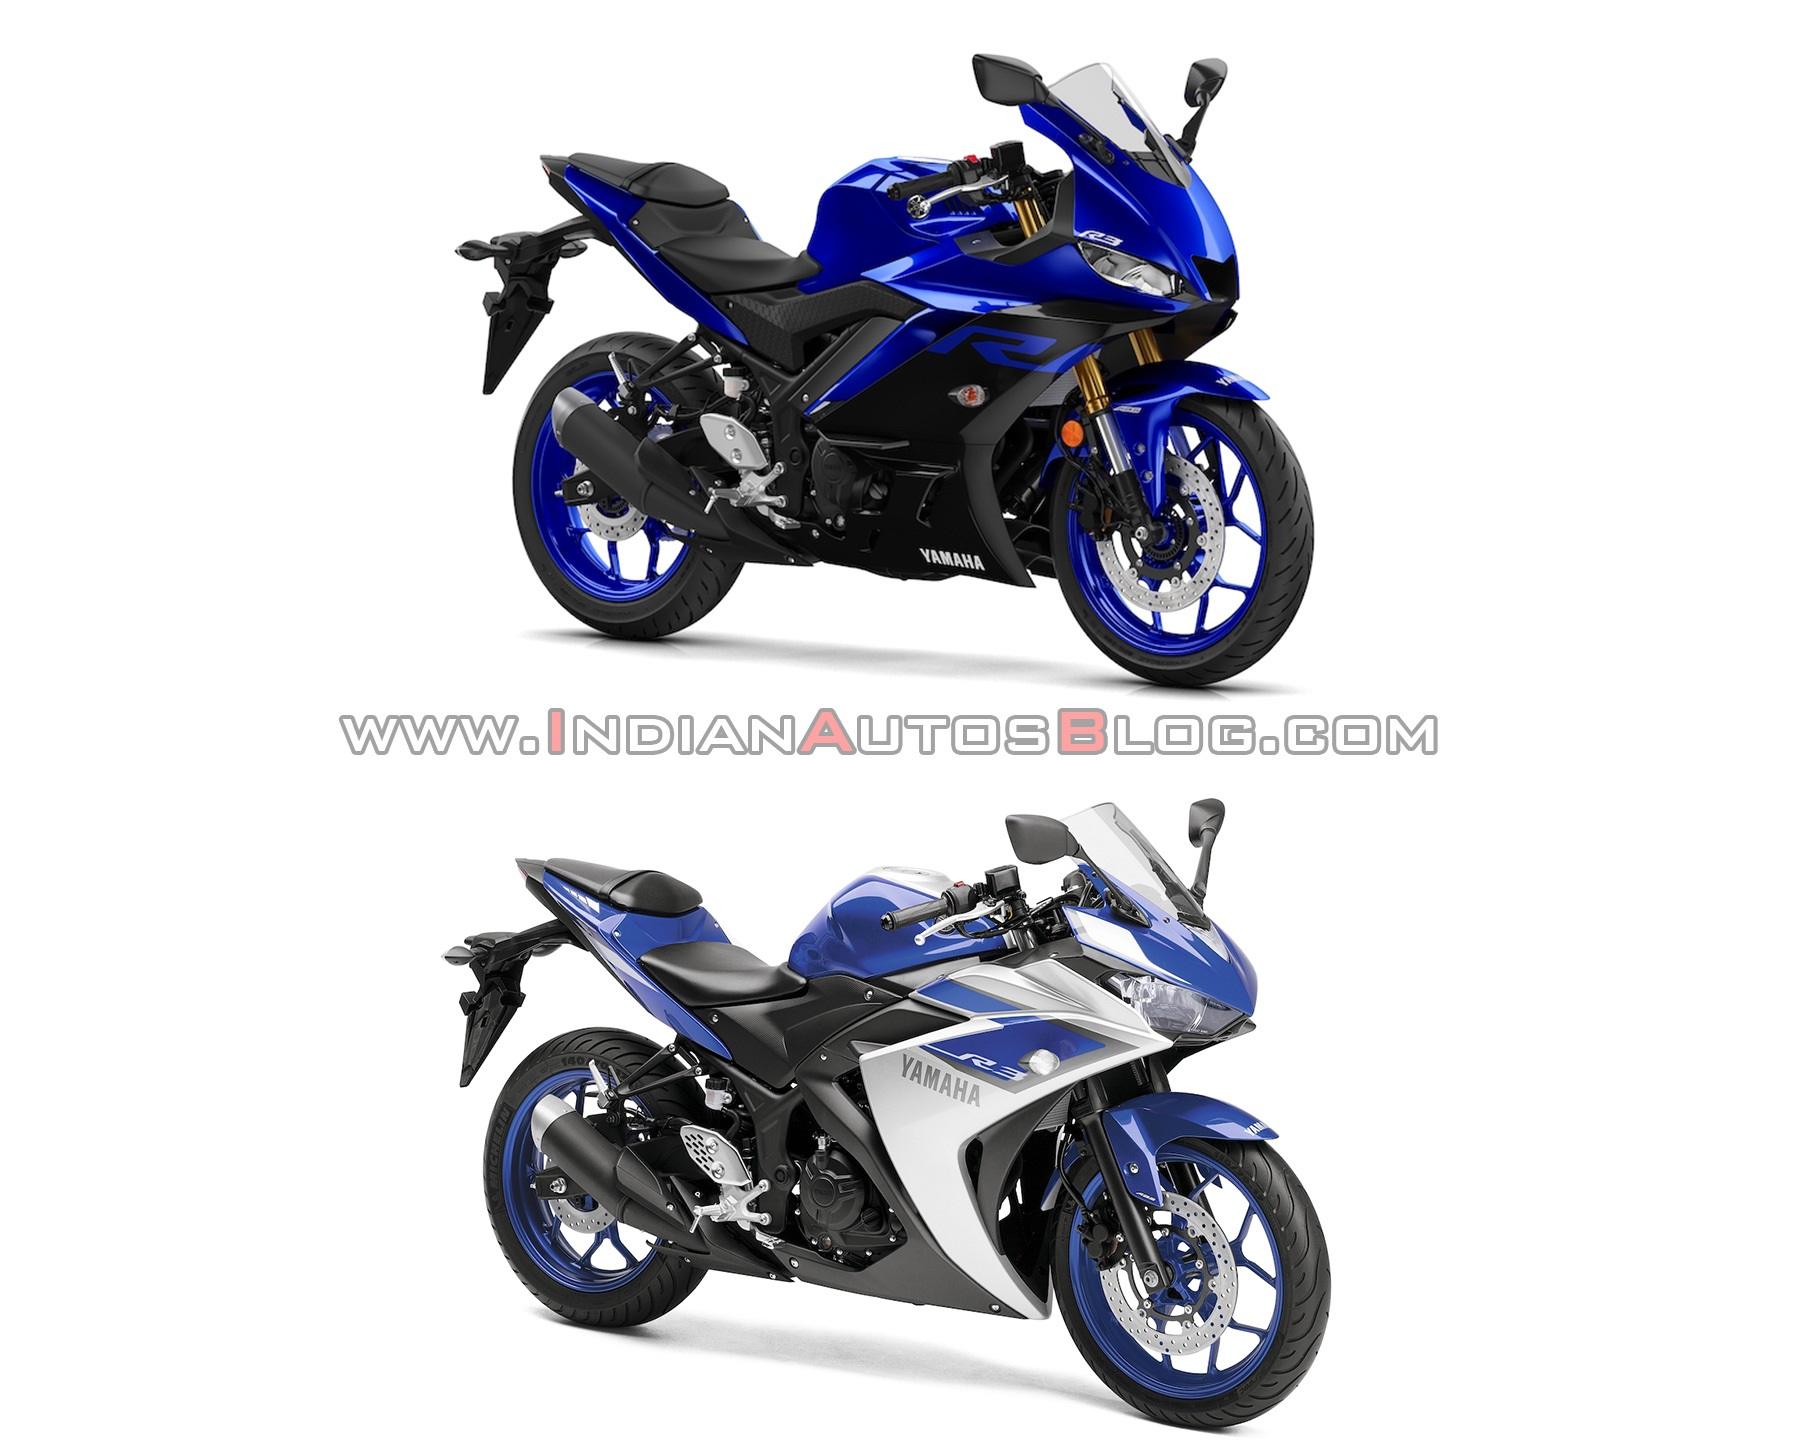 2019 yamaha r3 vs. 2015 yamaha r3 - old vs. new